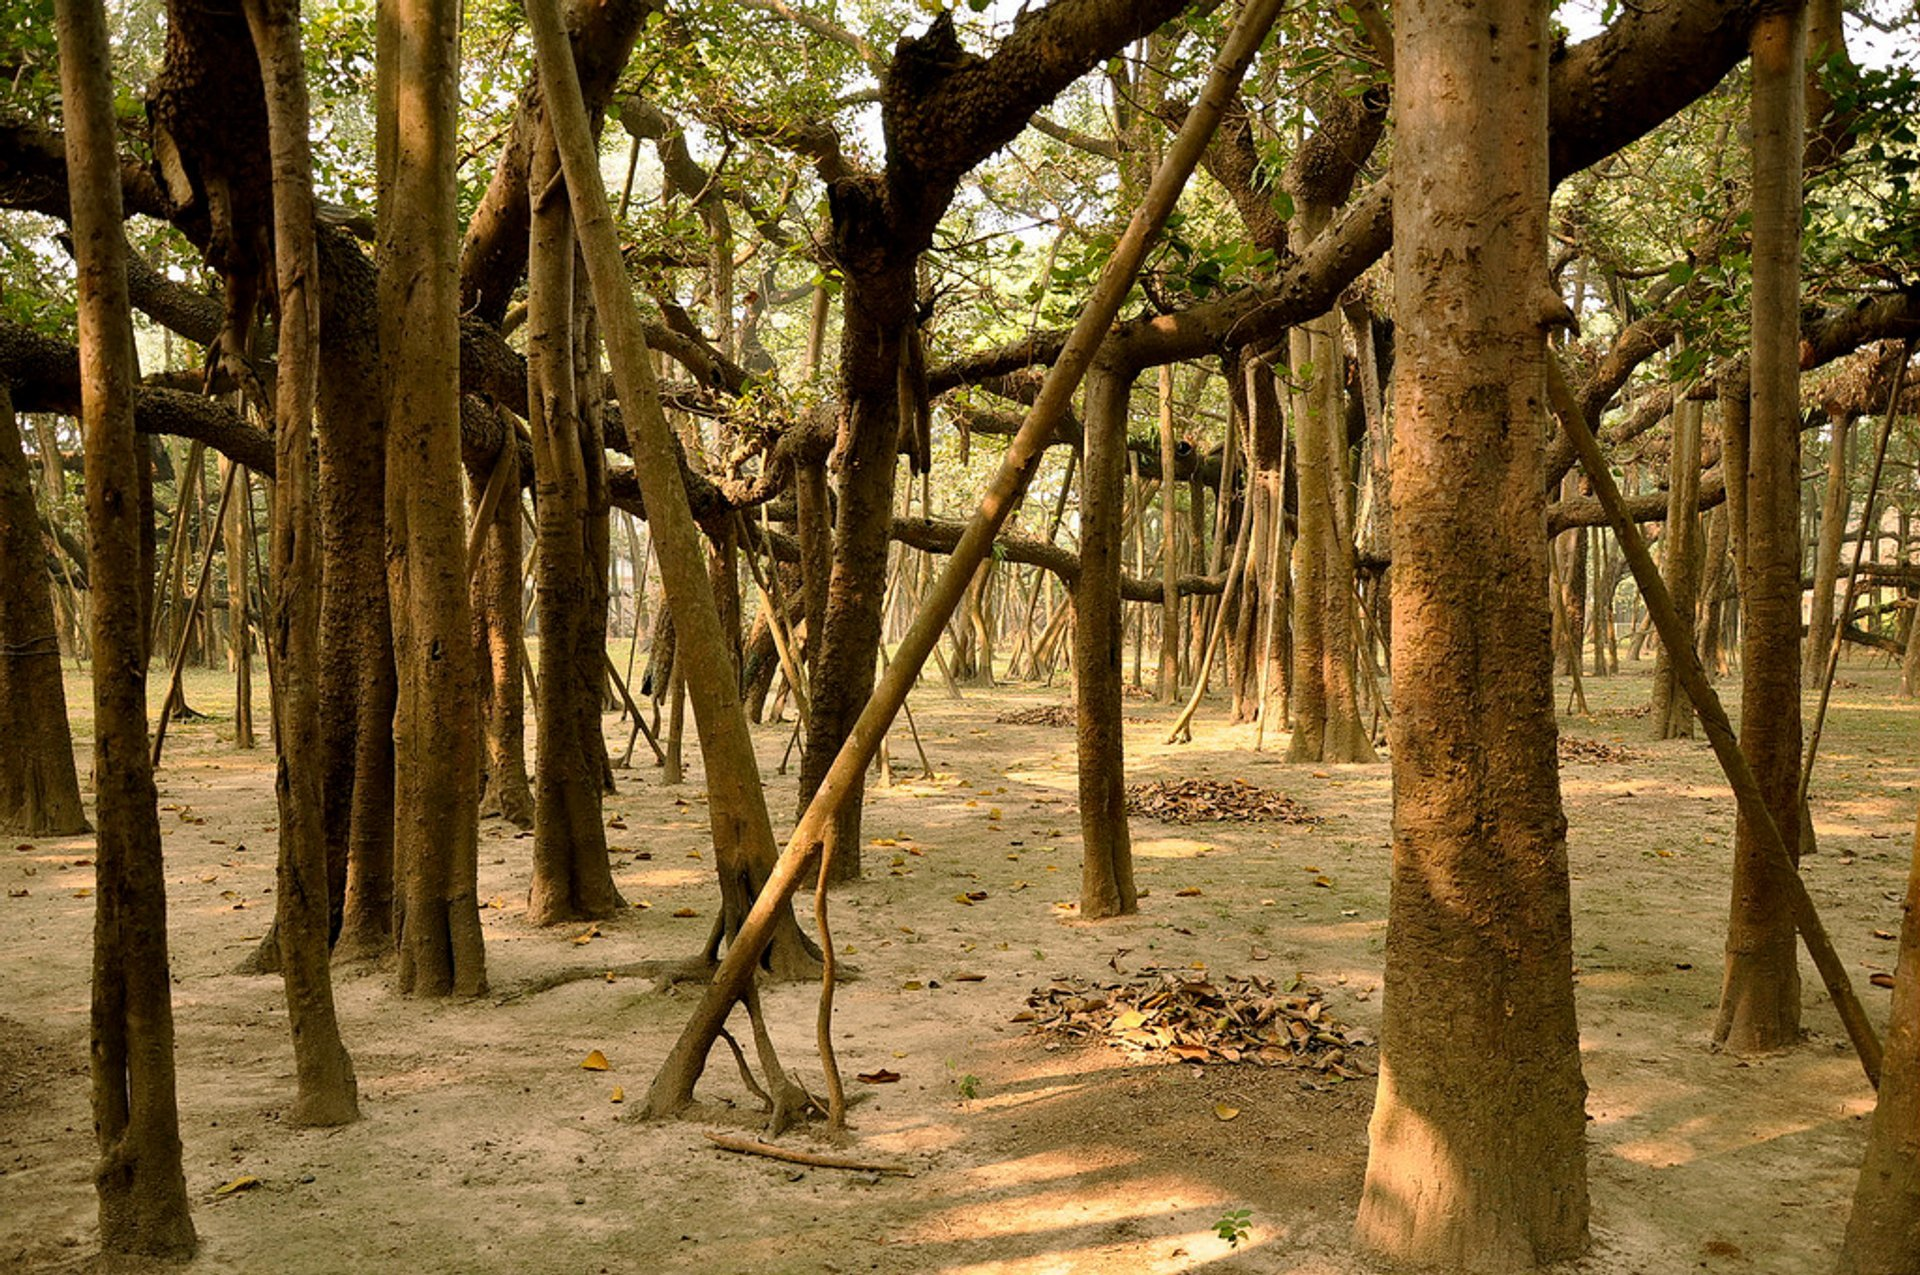 Best time for Great Banyan Tree in India